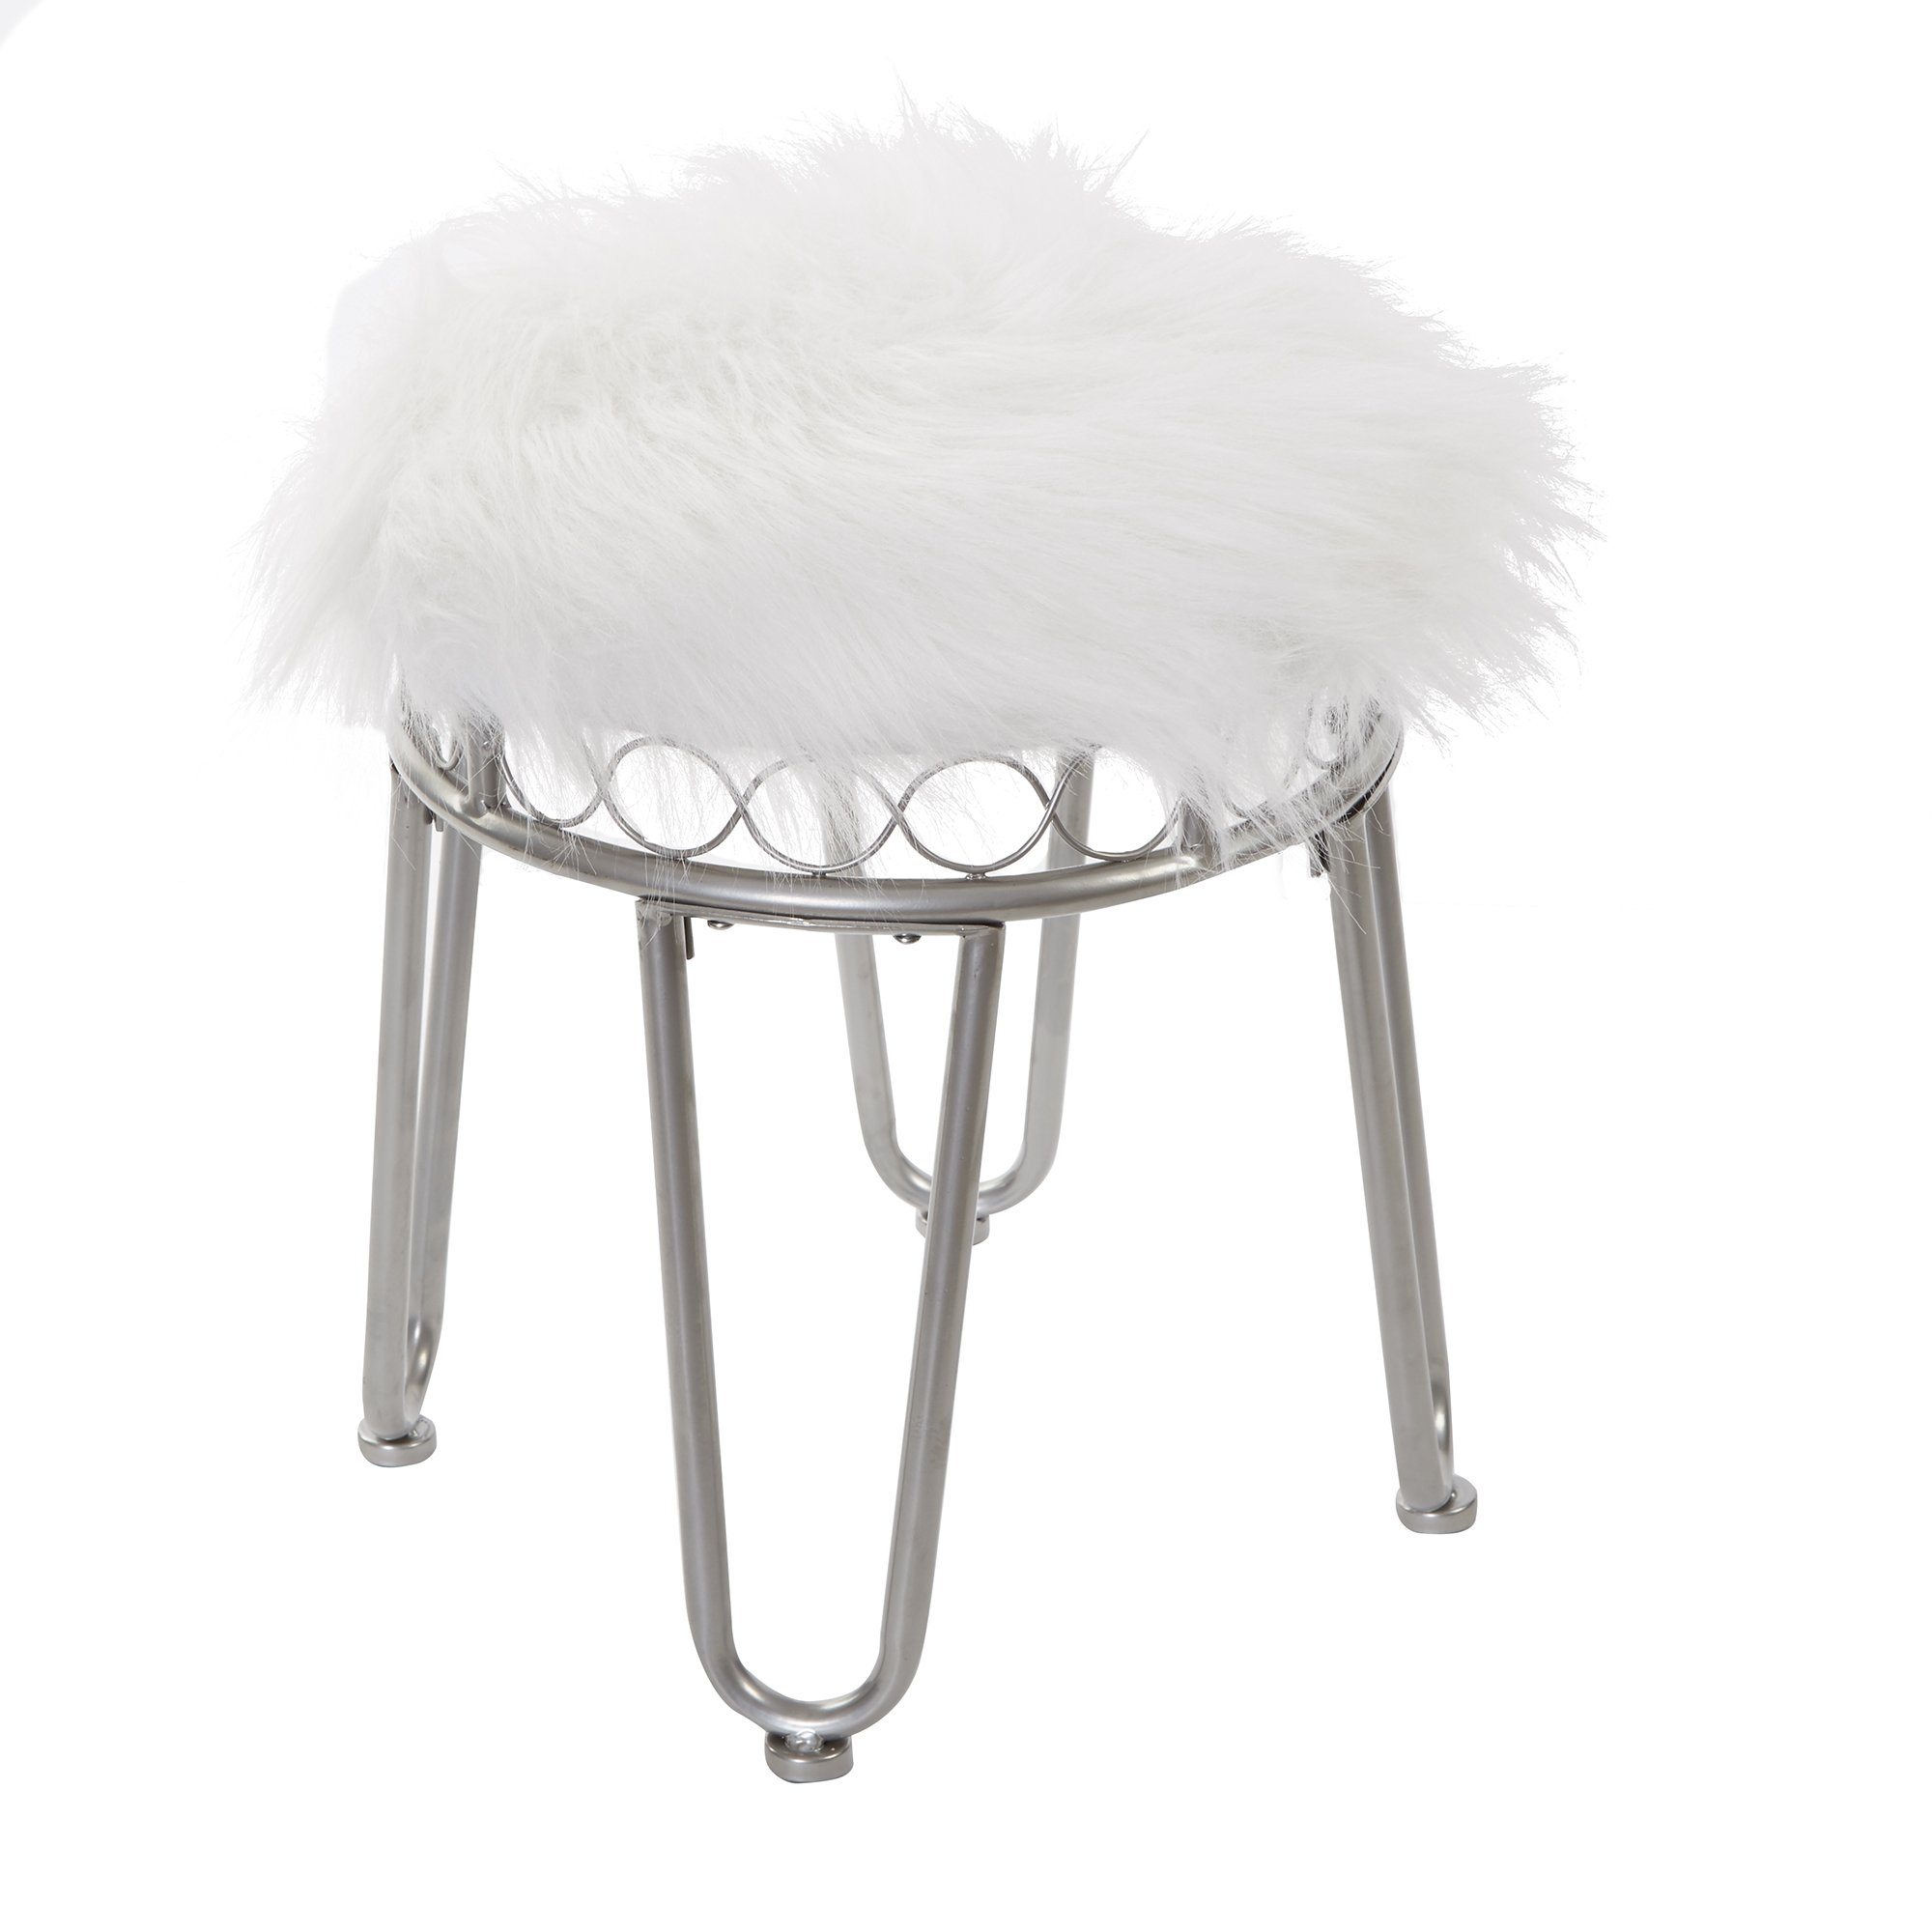 Silverwood Hannah Vanity Stool with Hairpin Legs by Silverwood